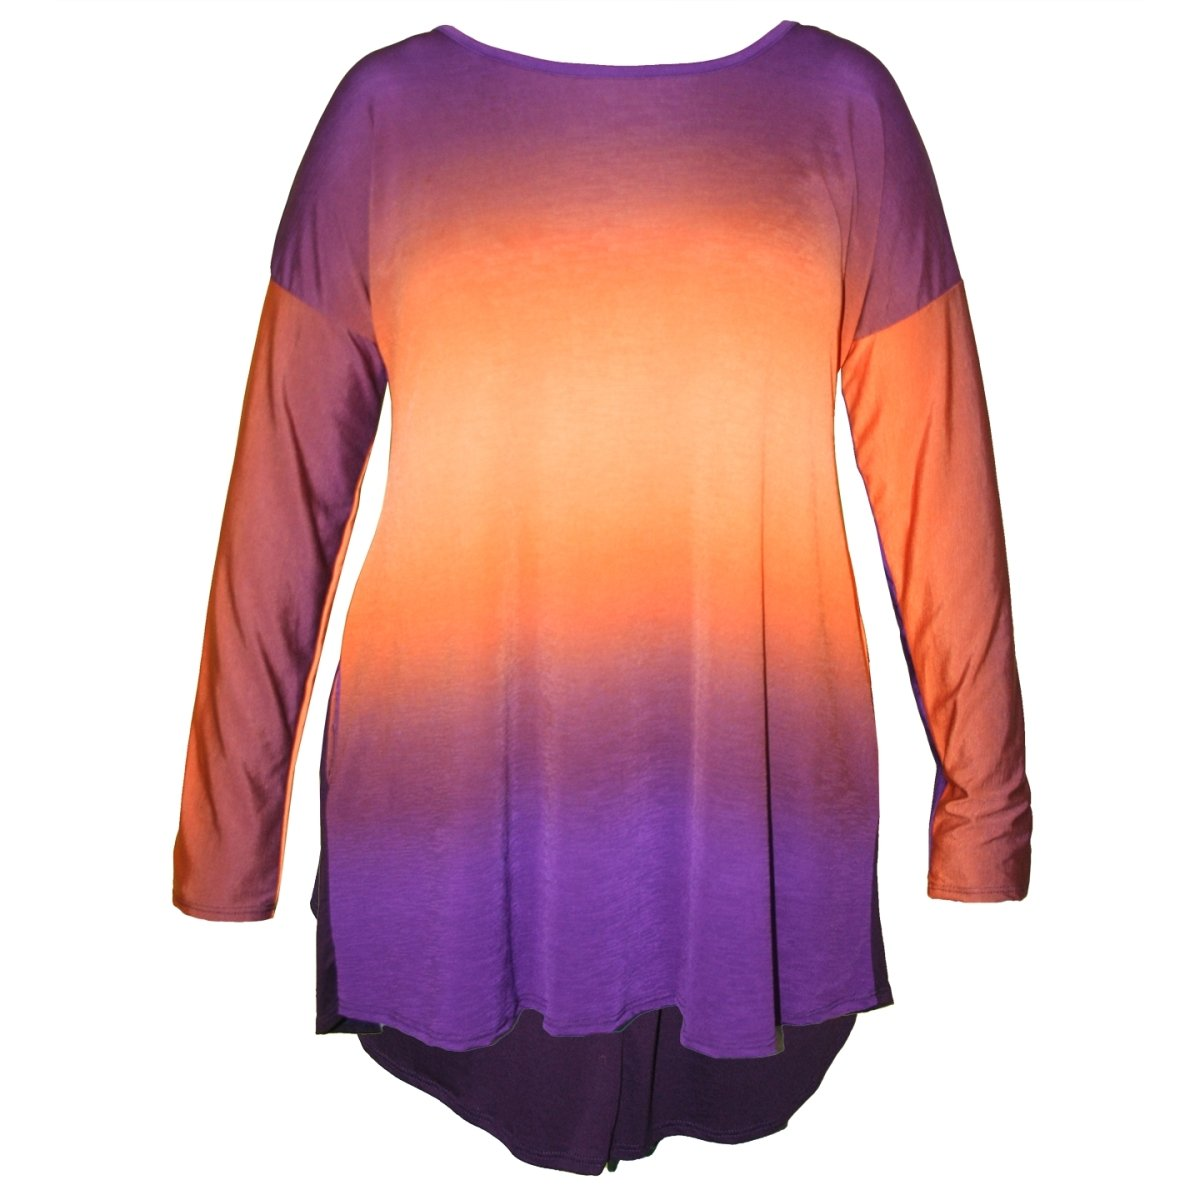 Long Sleeve Ombre Top With Criss Cross Back - Mr. Knickerbocker